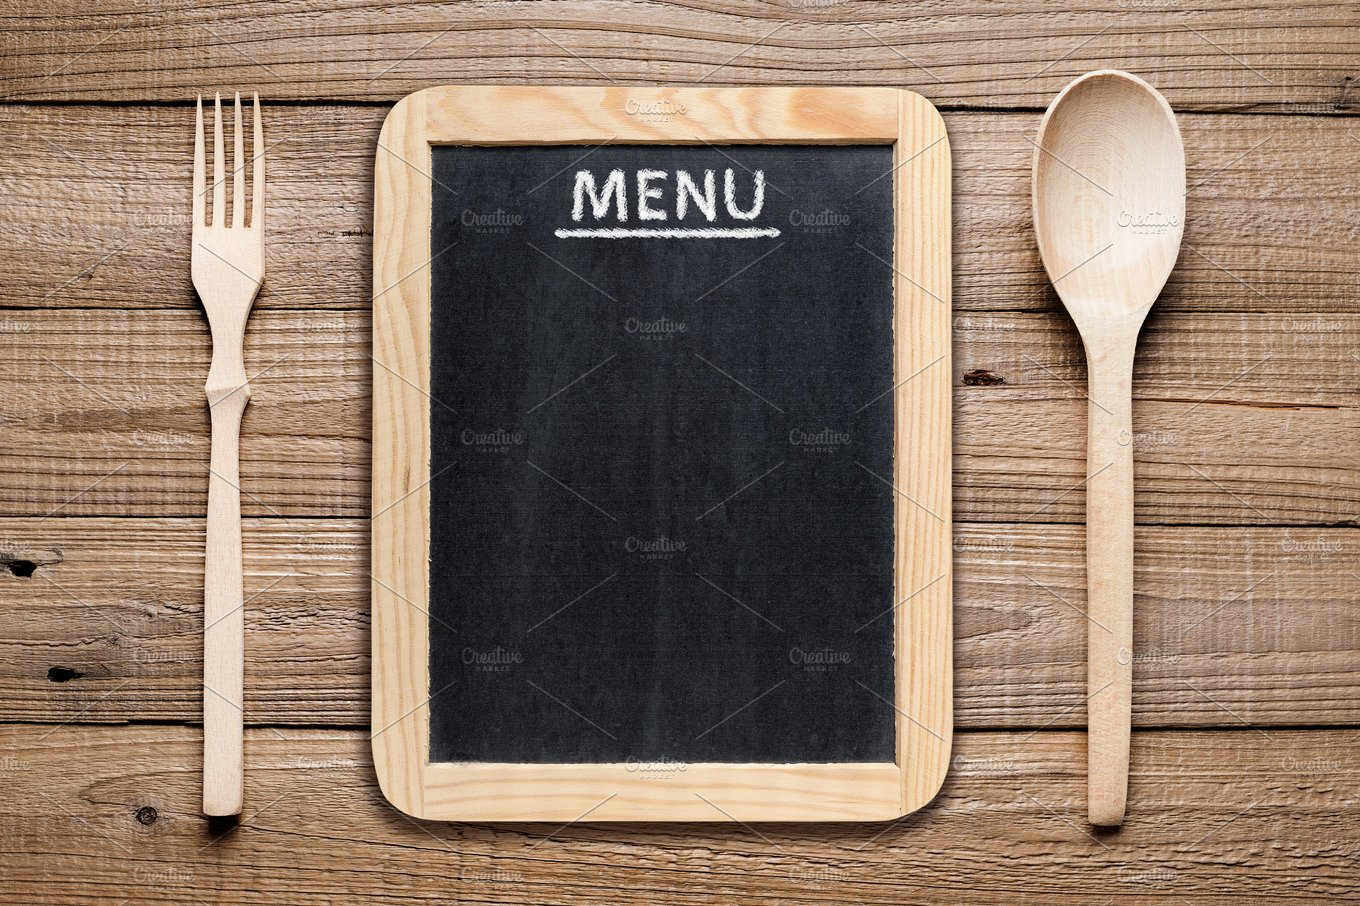 Fork Knife Menu Board ~ Food & Drink Photos ~ Creative Market